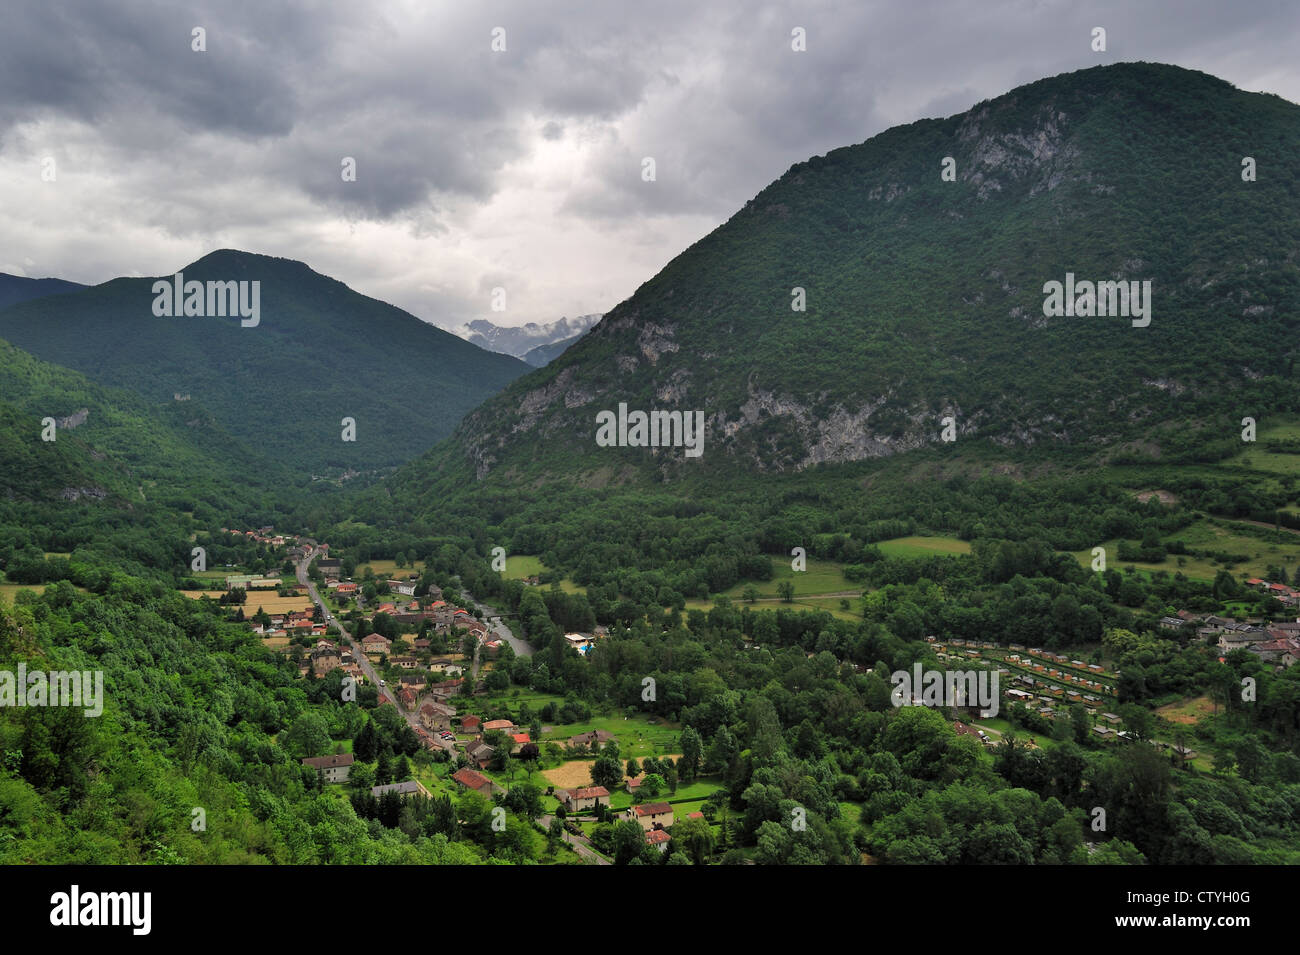 View over the village Niaux in the Midi-Pyrénées, Pyrenees, France - Stock Image